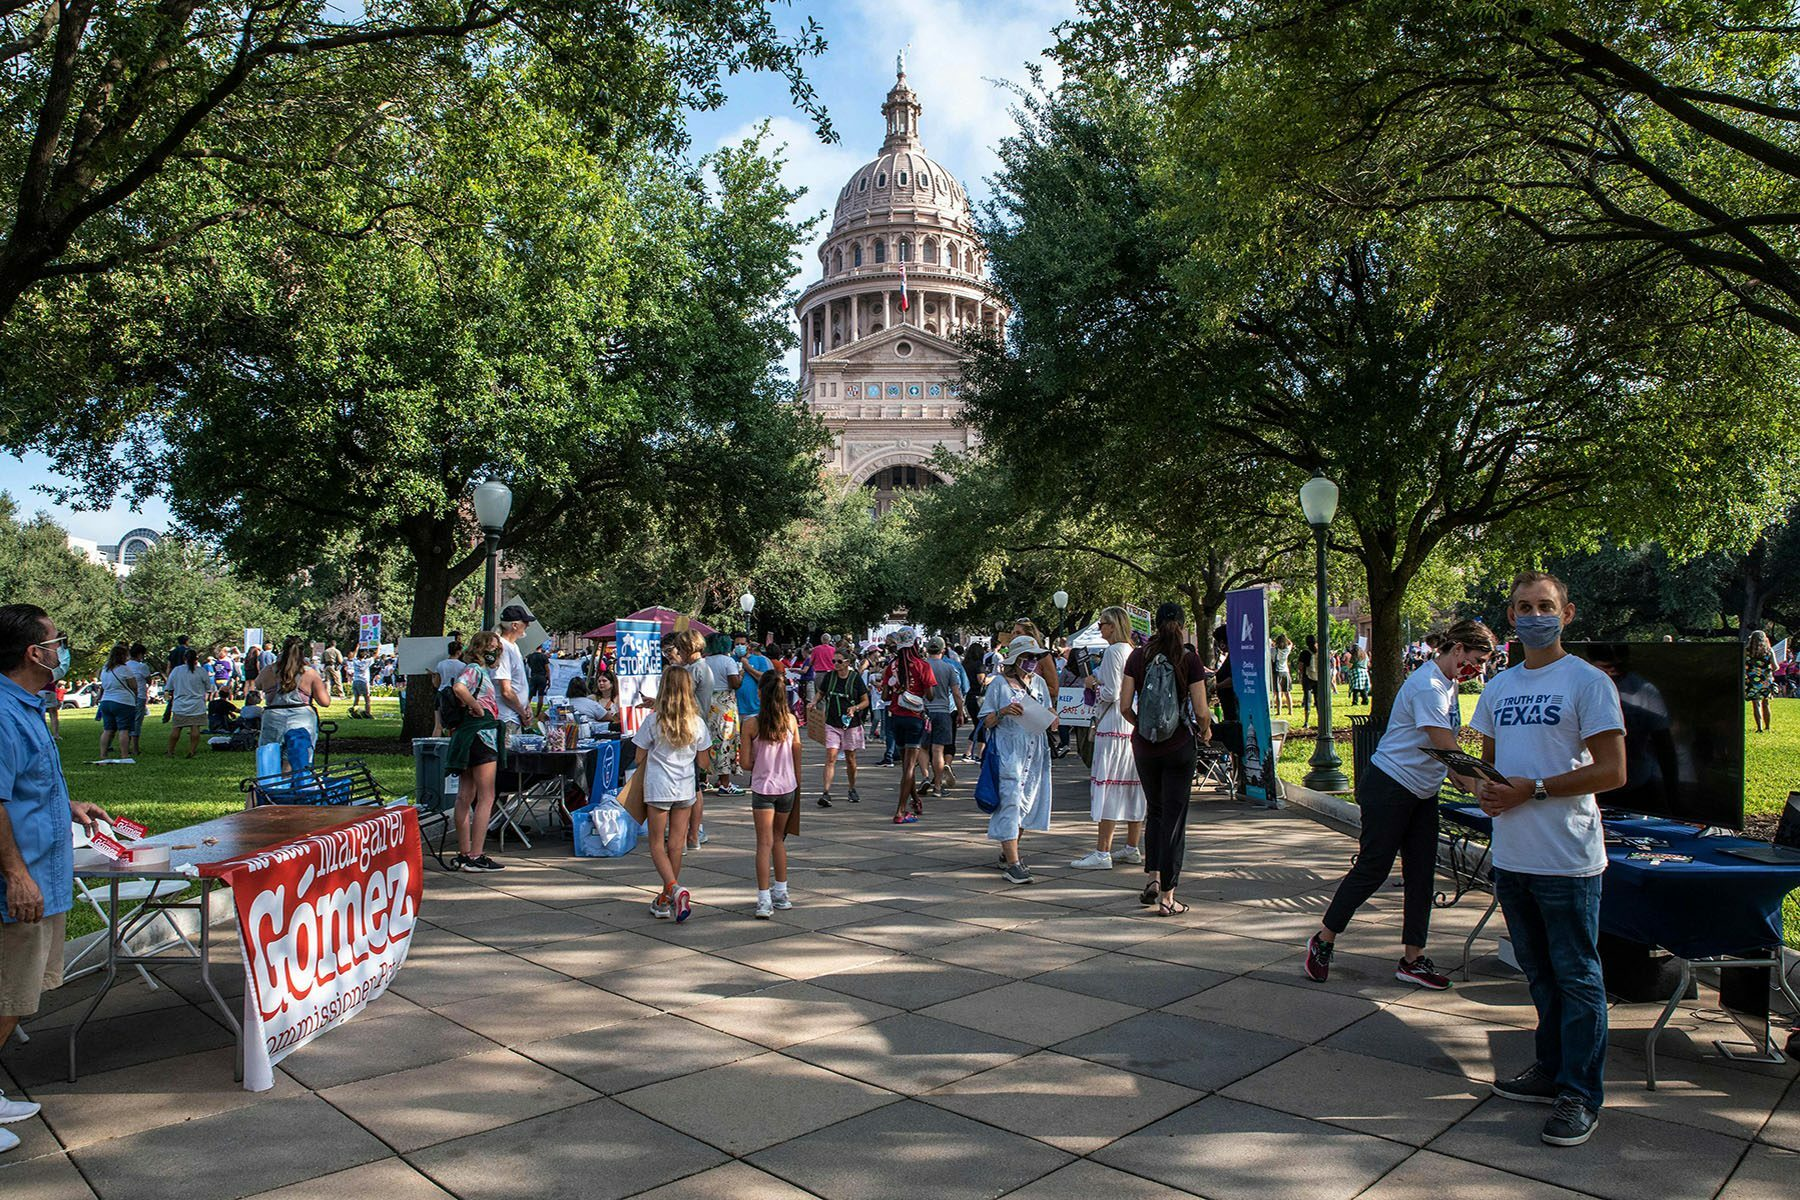 The Texas State Capitol is seen as people gather for the Women's March.